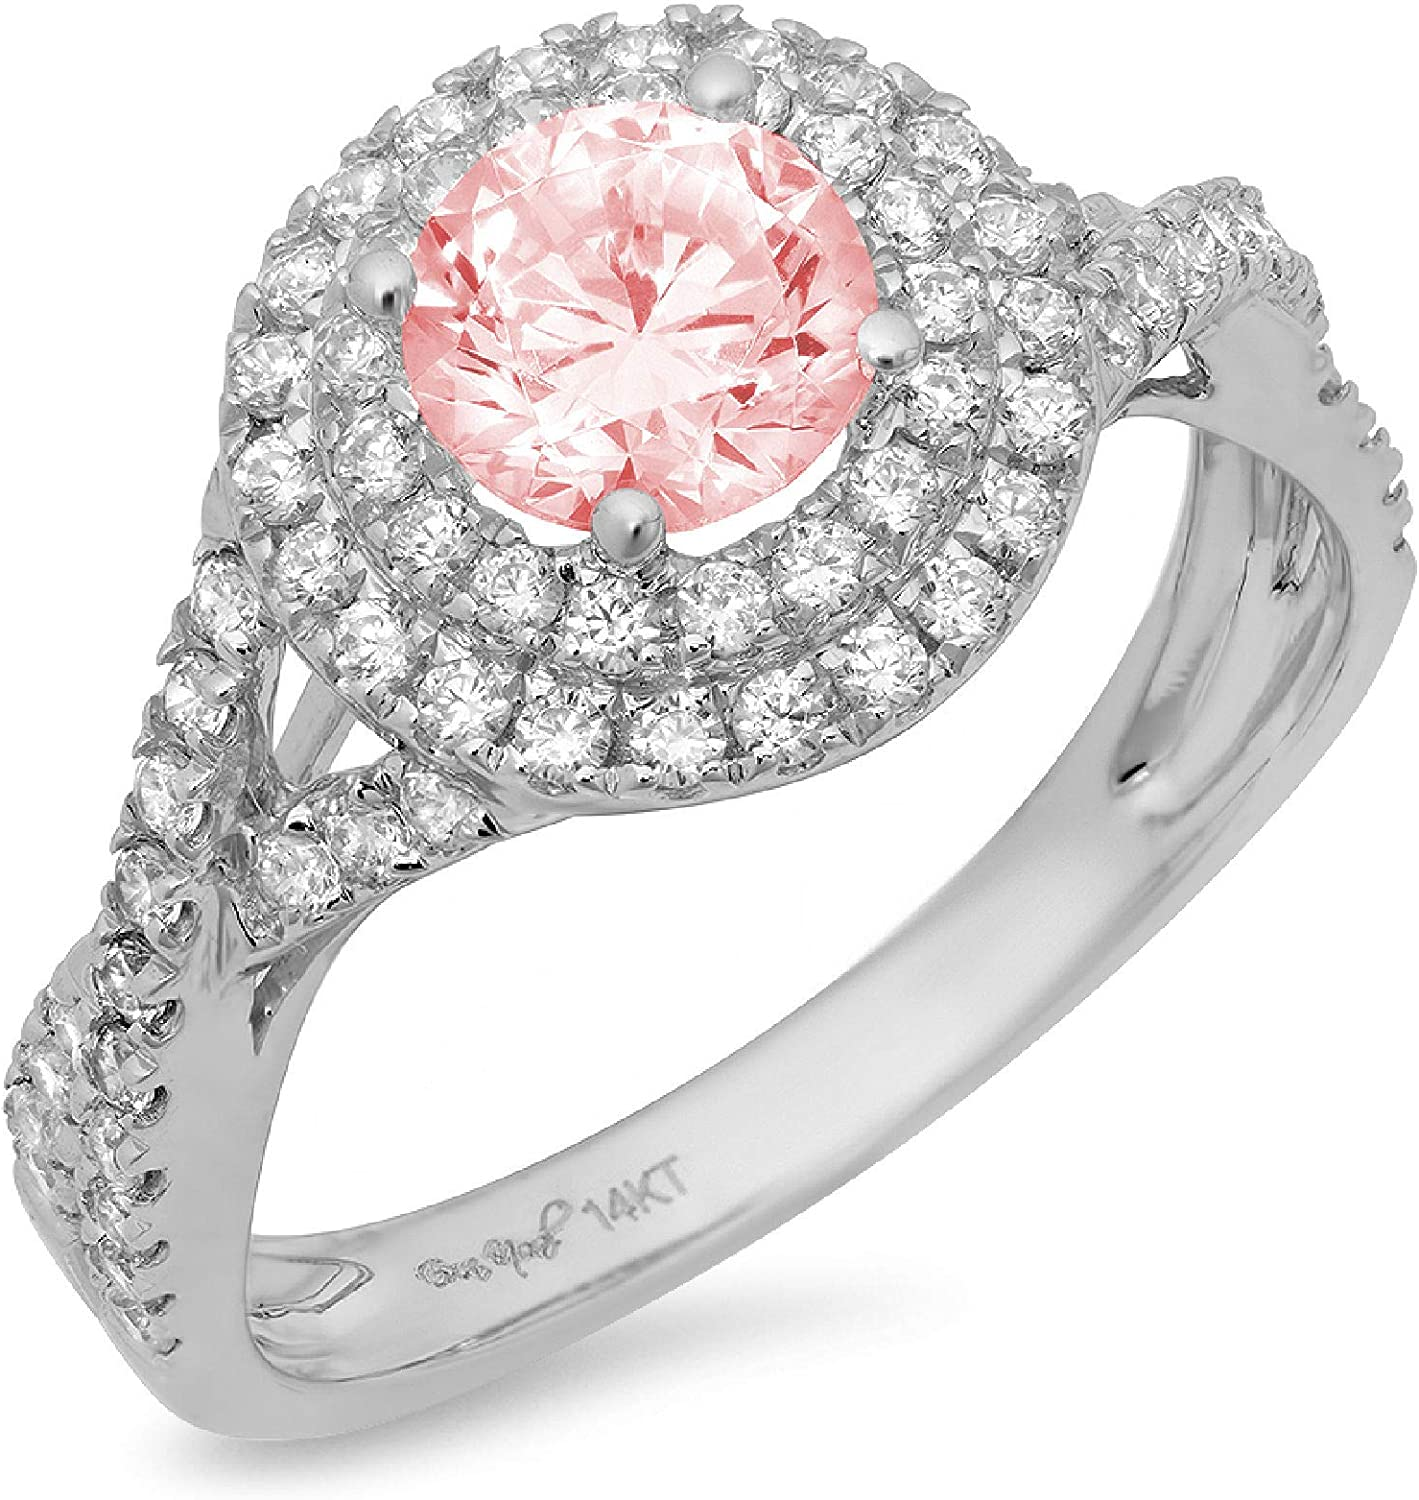 Clara Pucci 1.5 ct Round Cut Solitaire double halo Stunning Genuine Flawless Pink Simulated Diamond Gem Designer Modern Statement Accent Ring Solid 18K White Gold